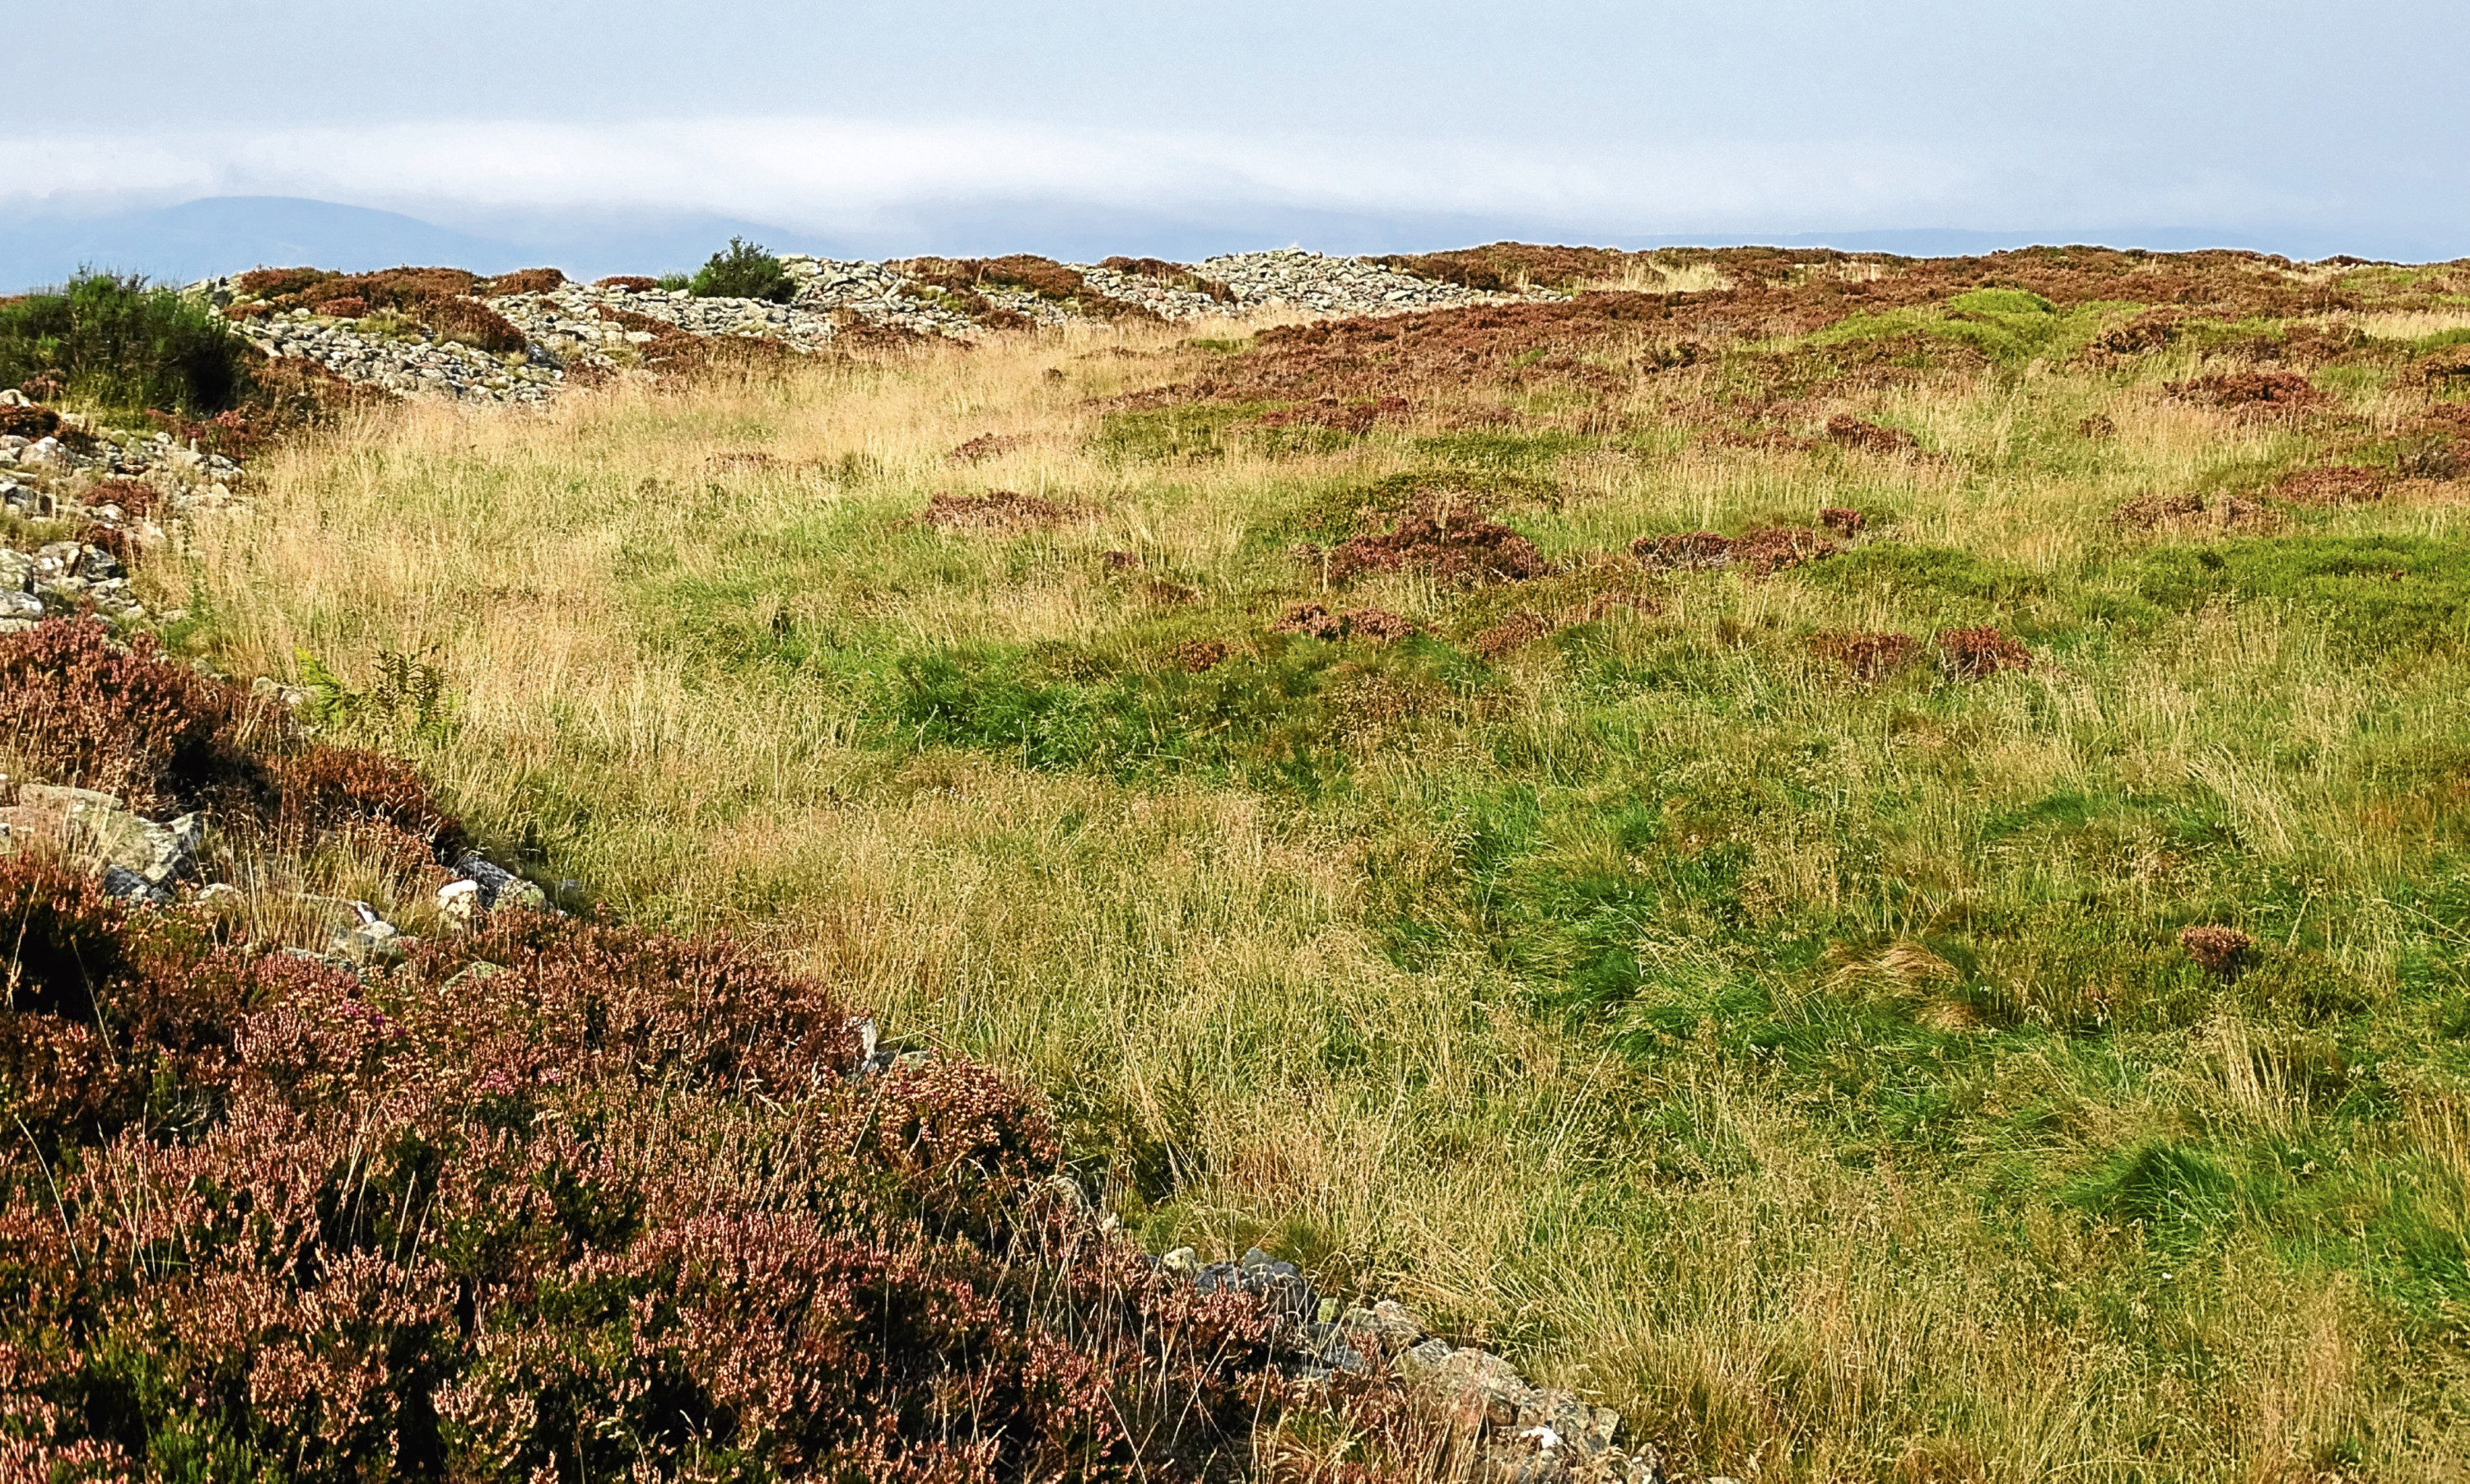 The summit of the White Caterthun, where there could well have been a settlement in centuries gone by.